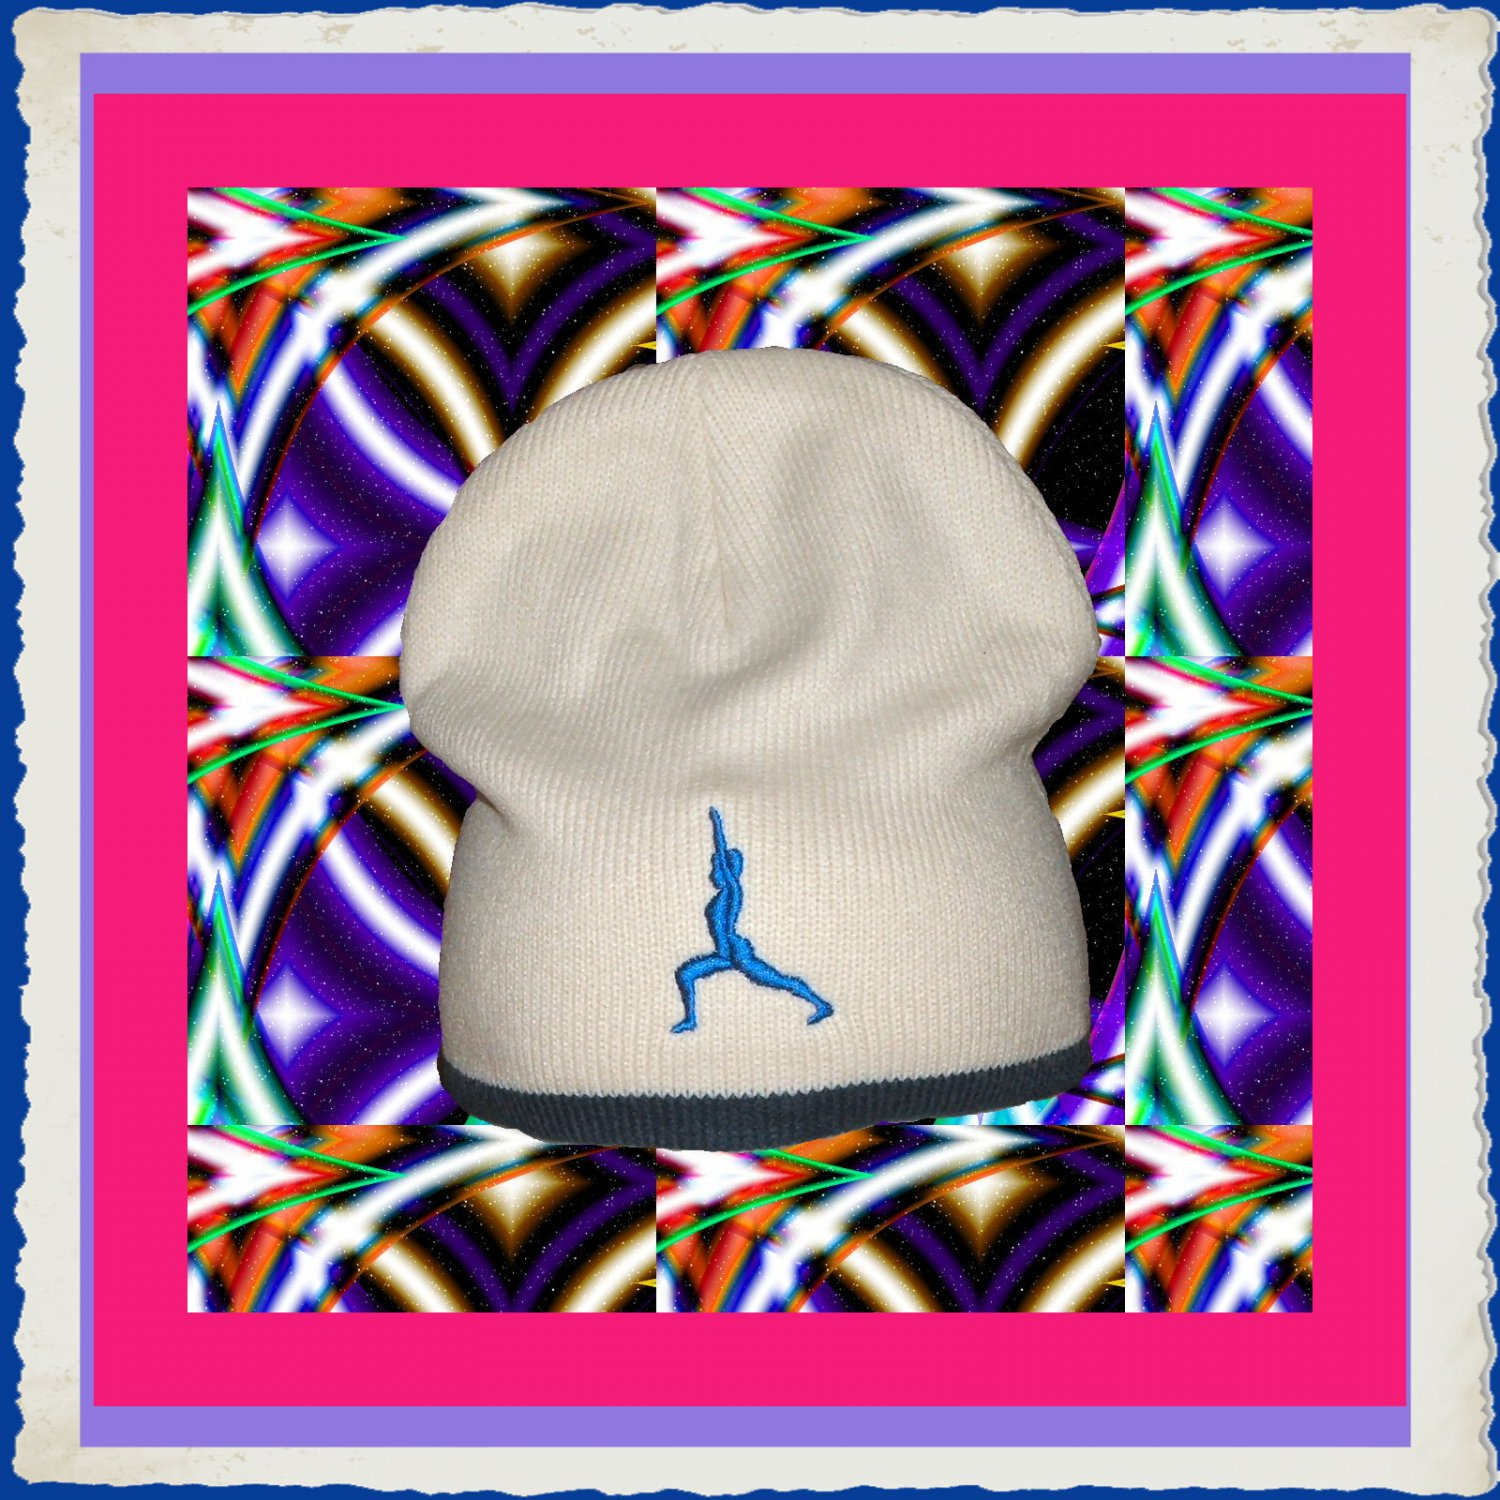 Knit Beanie Cap with Yoga Proud Warrior Embroidery